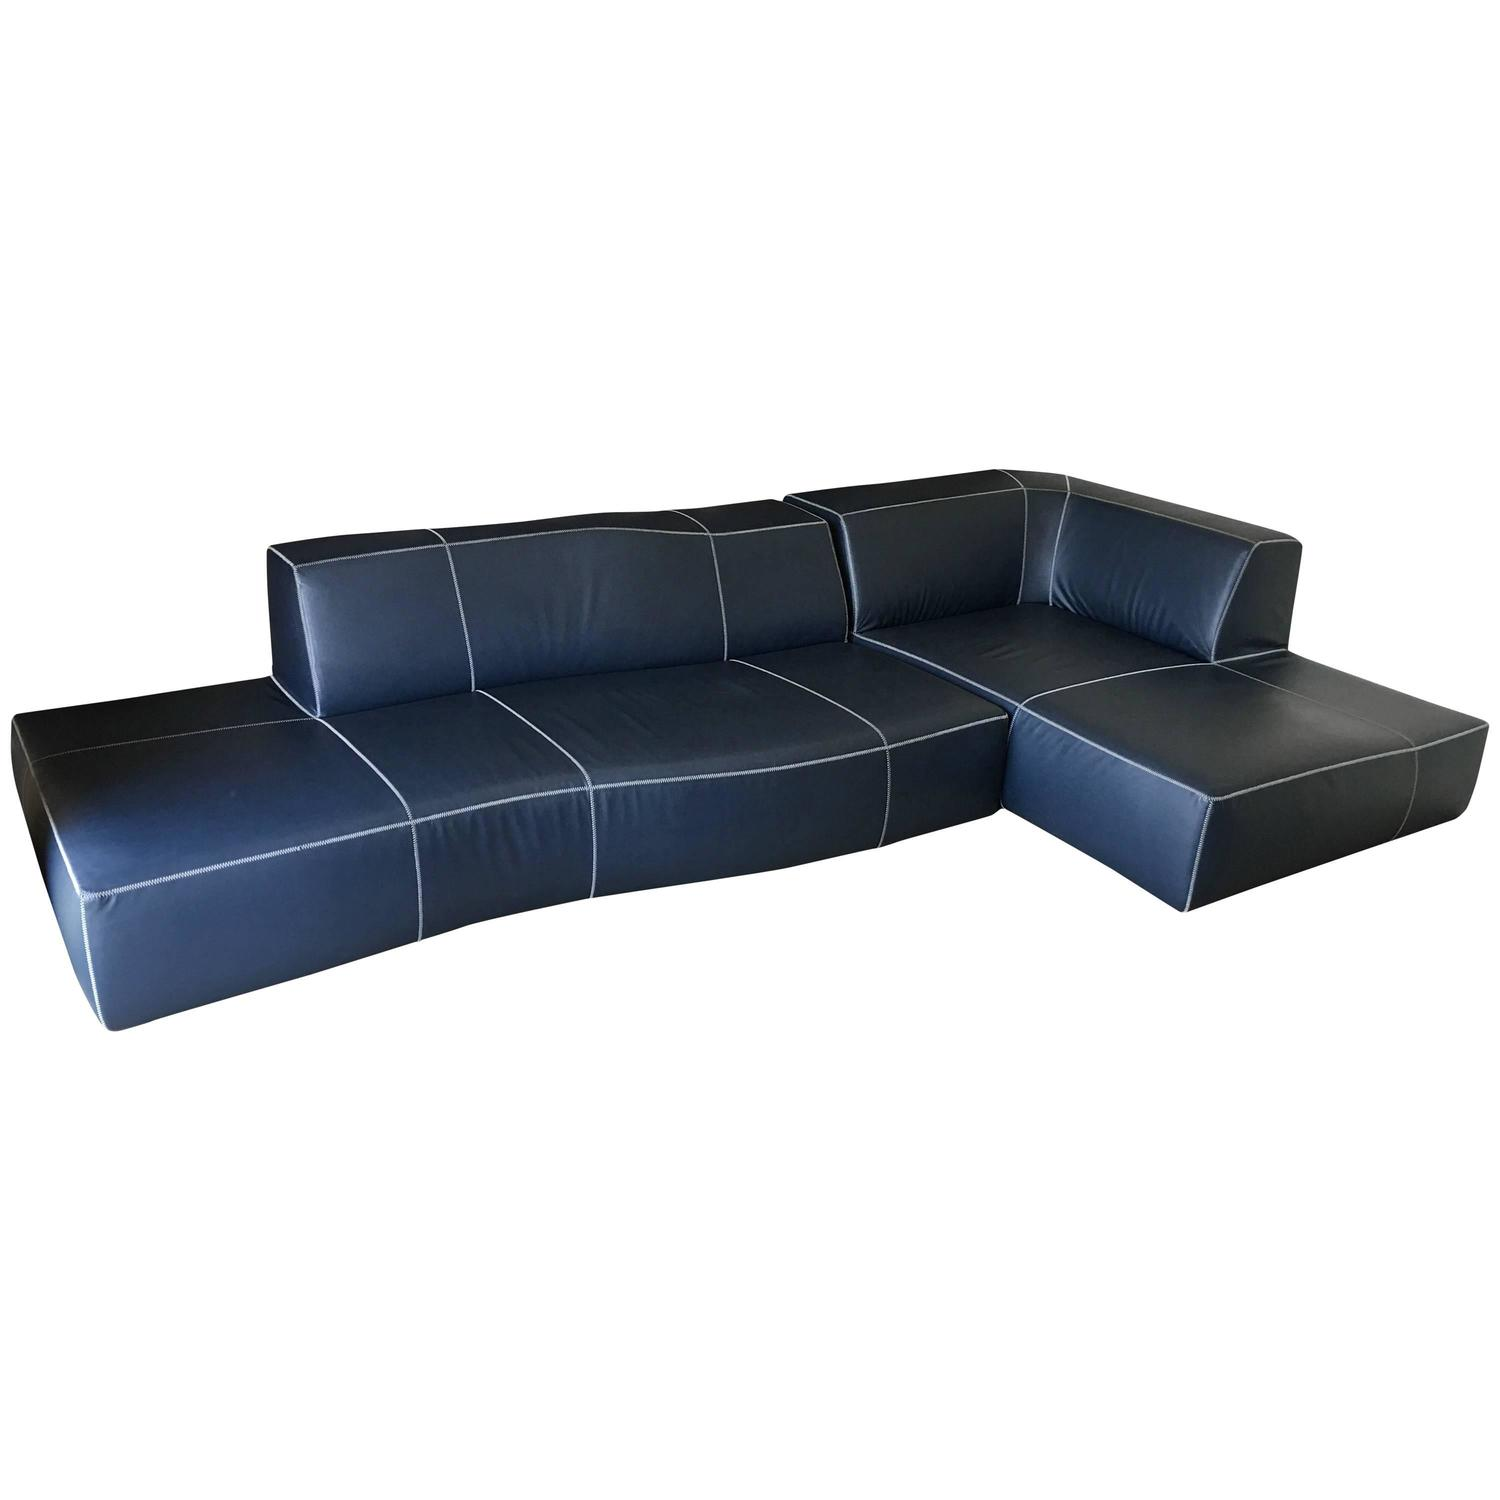 B&B Italia Modular Bend Sectional Sofa at 1stdibs